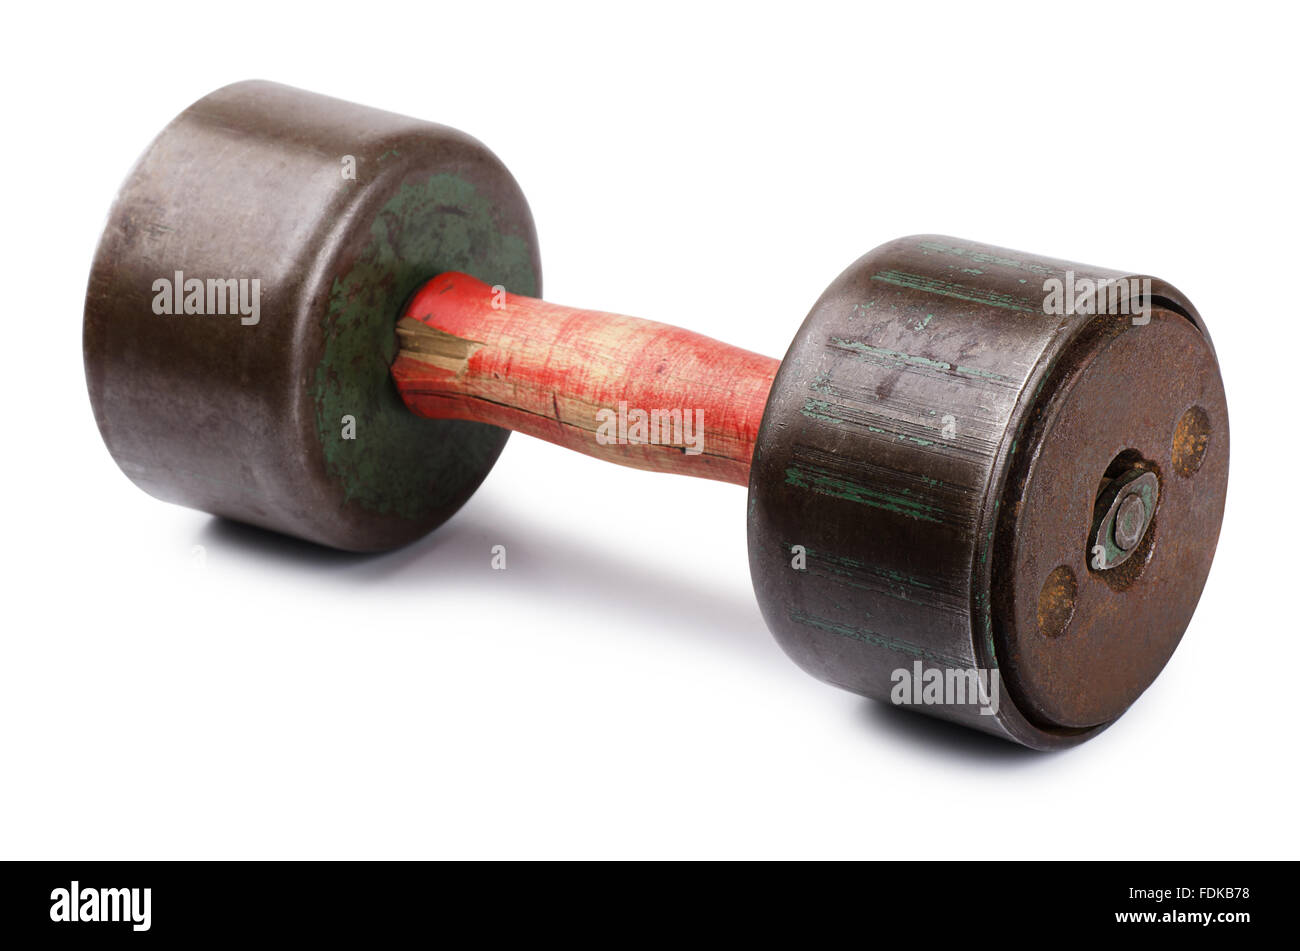 Old dumbbell on a white background - Stock Image